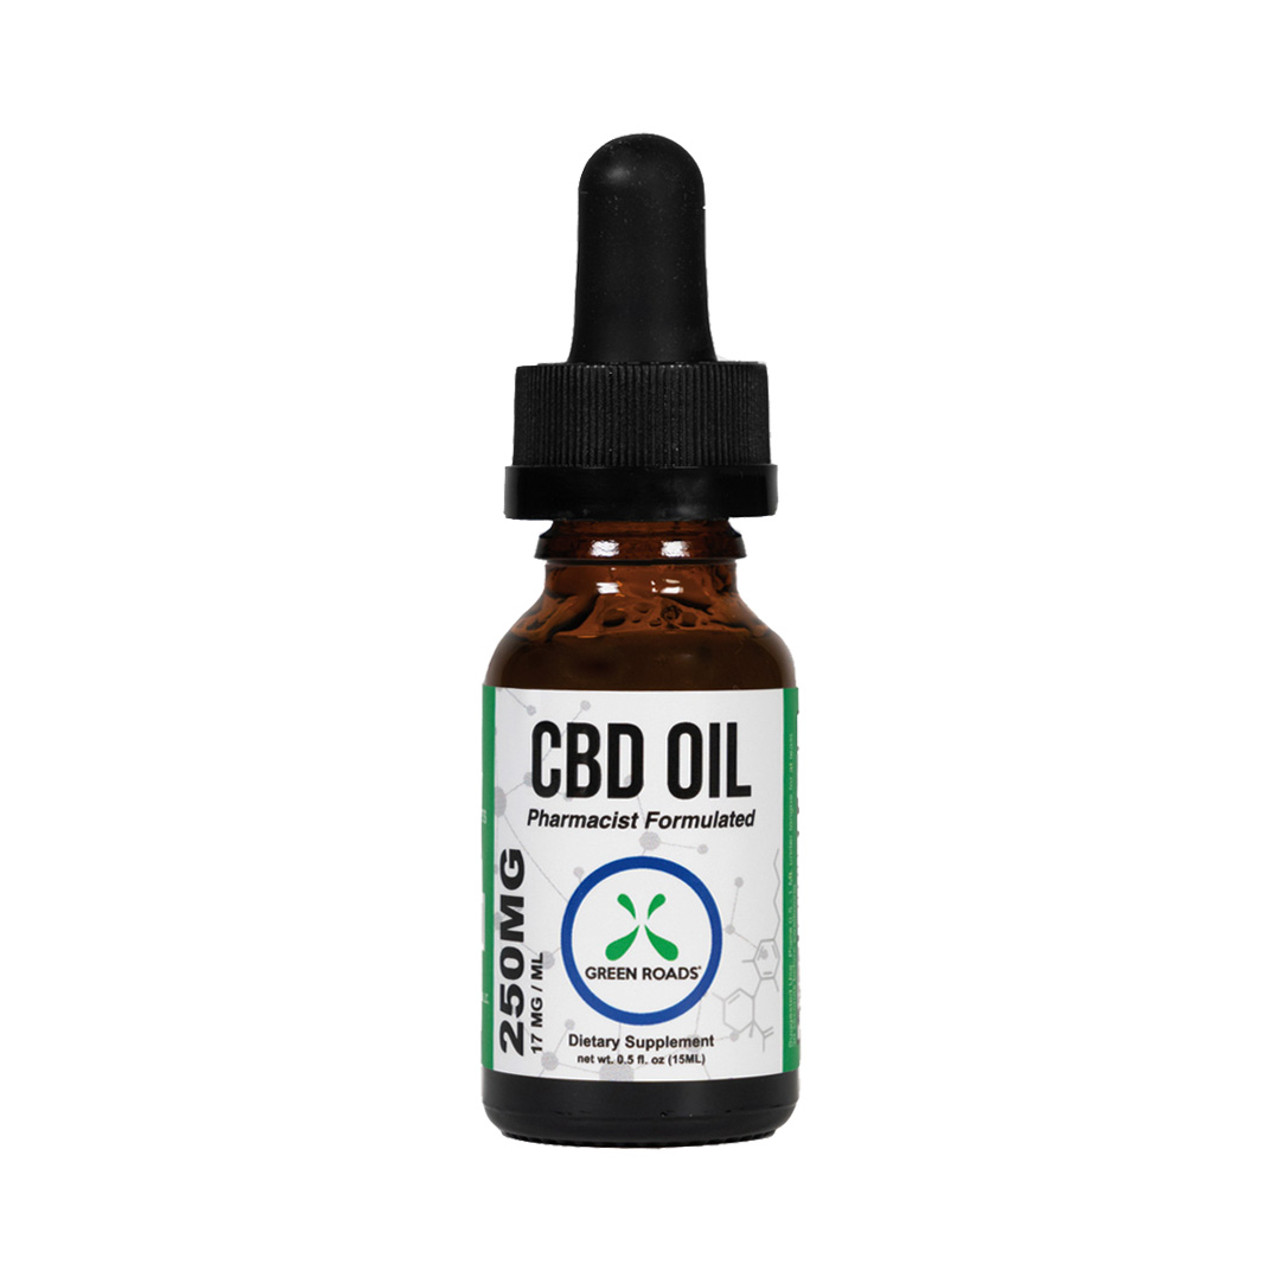 Green Roads 250 mg CBD Oil is a low dosage of cannabidiol oil perfect for CBD beginners or for those who have established their preferred daily amount of CBD